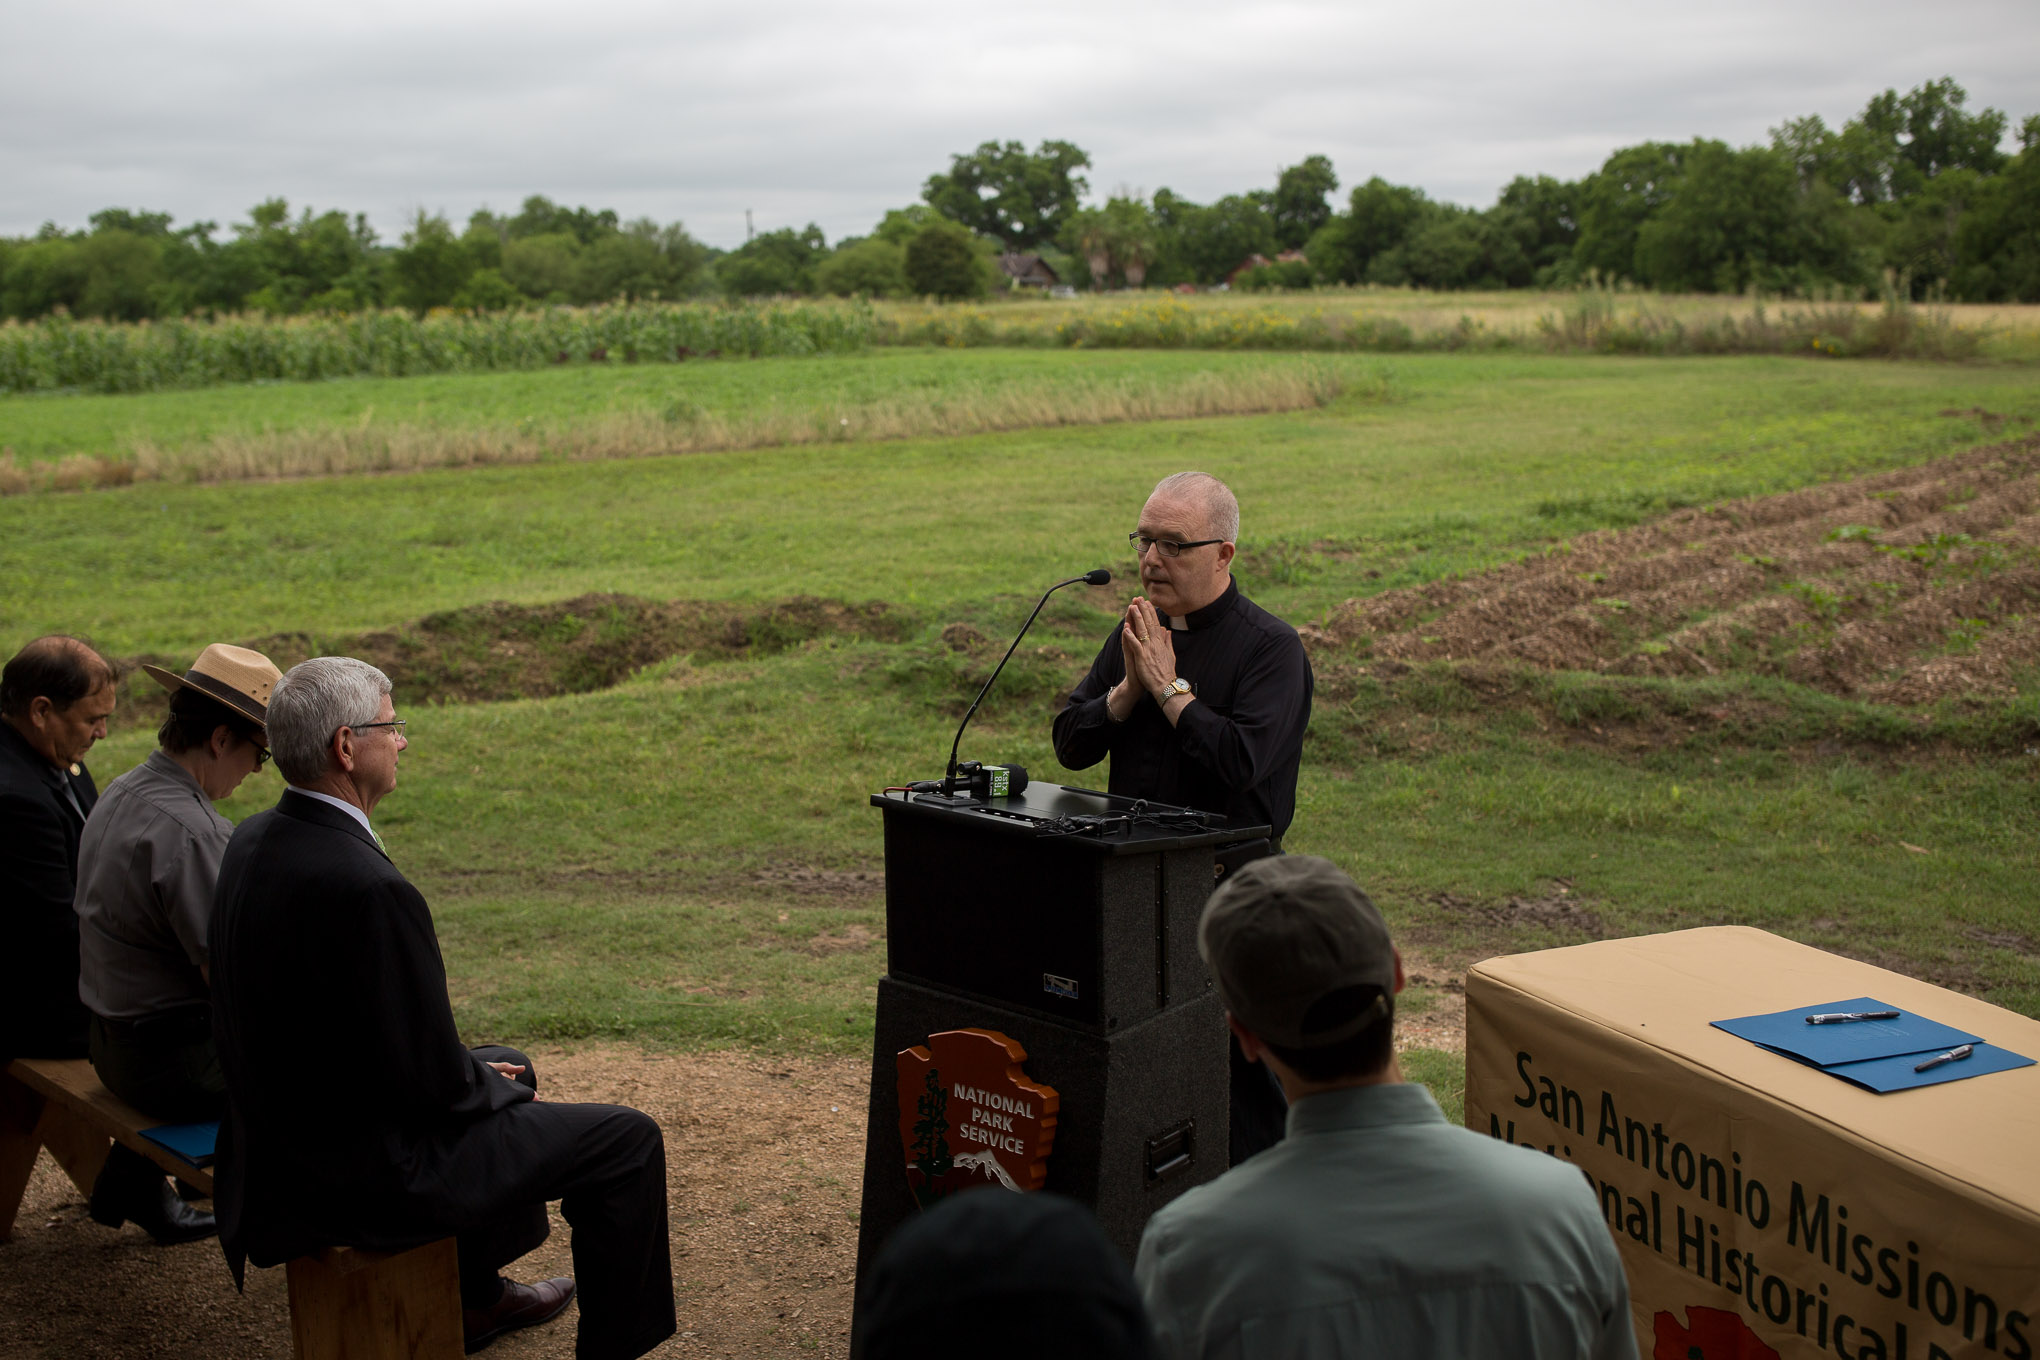 Reverend James Galvin says a prayer at the press conference. Photo by Scott Ball.